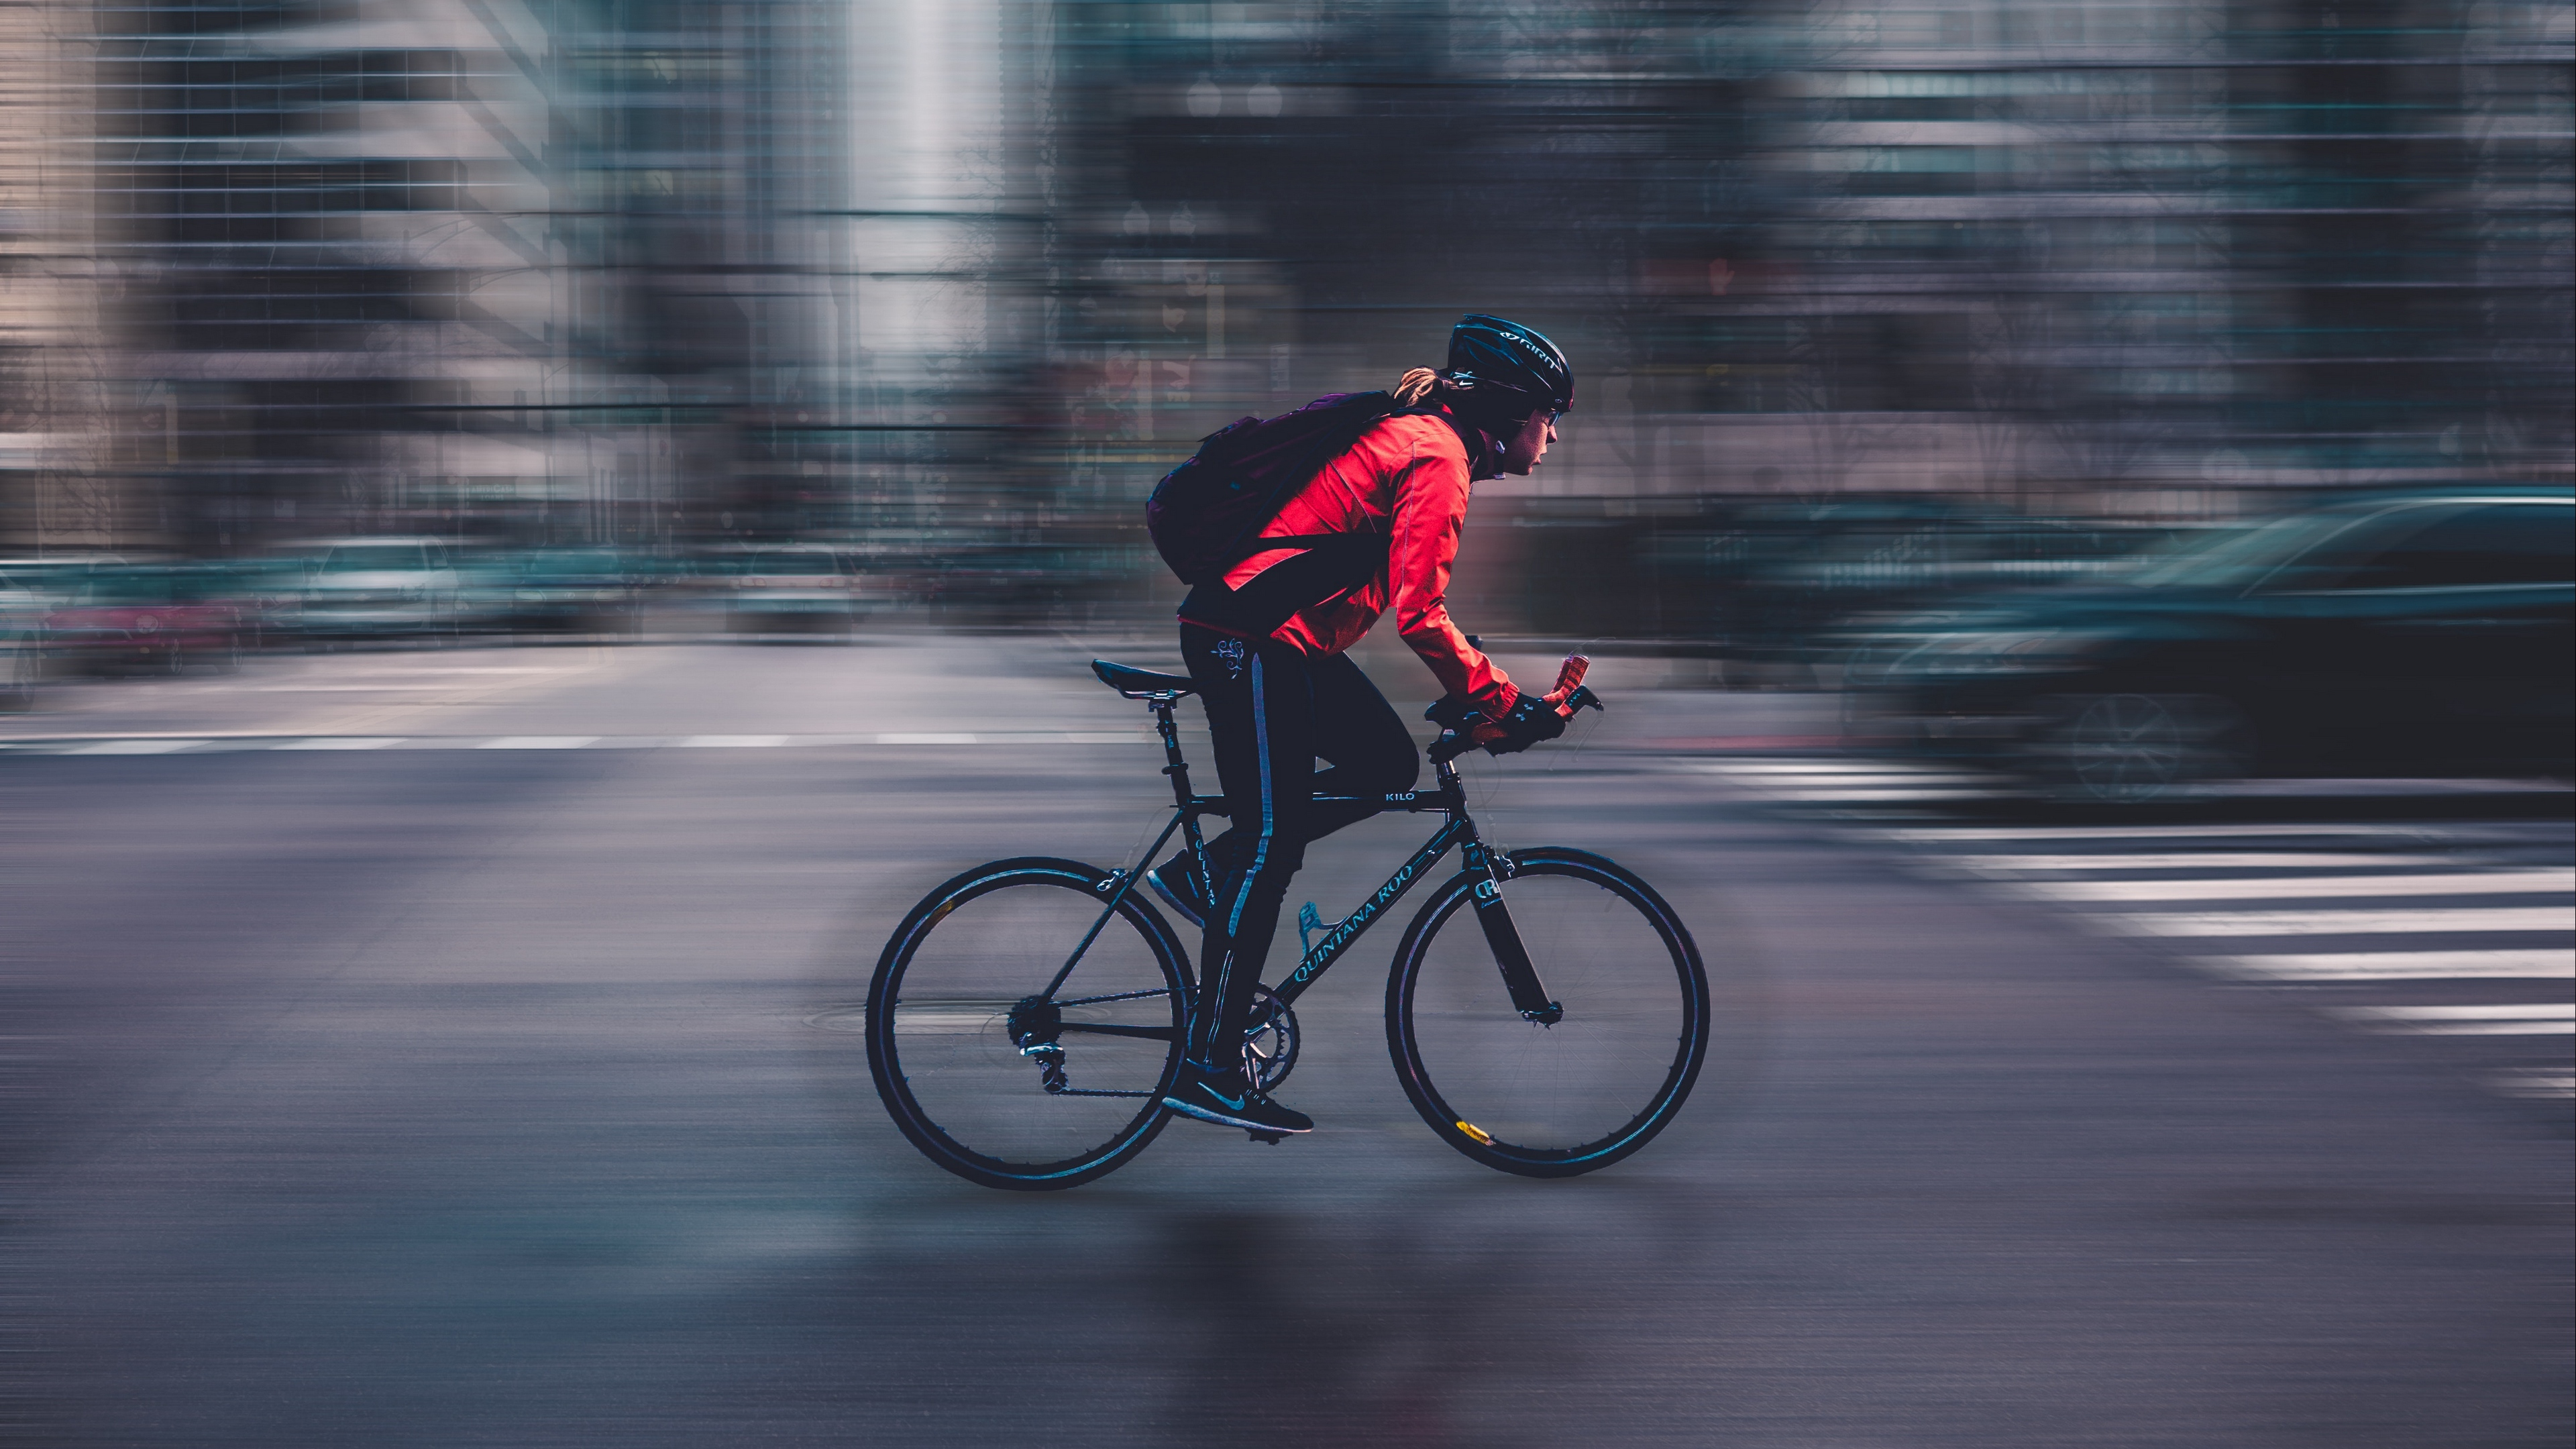 cyclist speed bicycle motion blur 4k 1540062604 - cyclist, speed, bicycle, motion, blur 4k - speed, cyclist, Bicycle